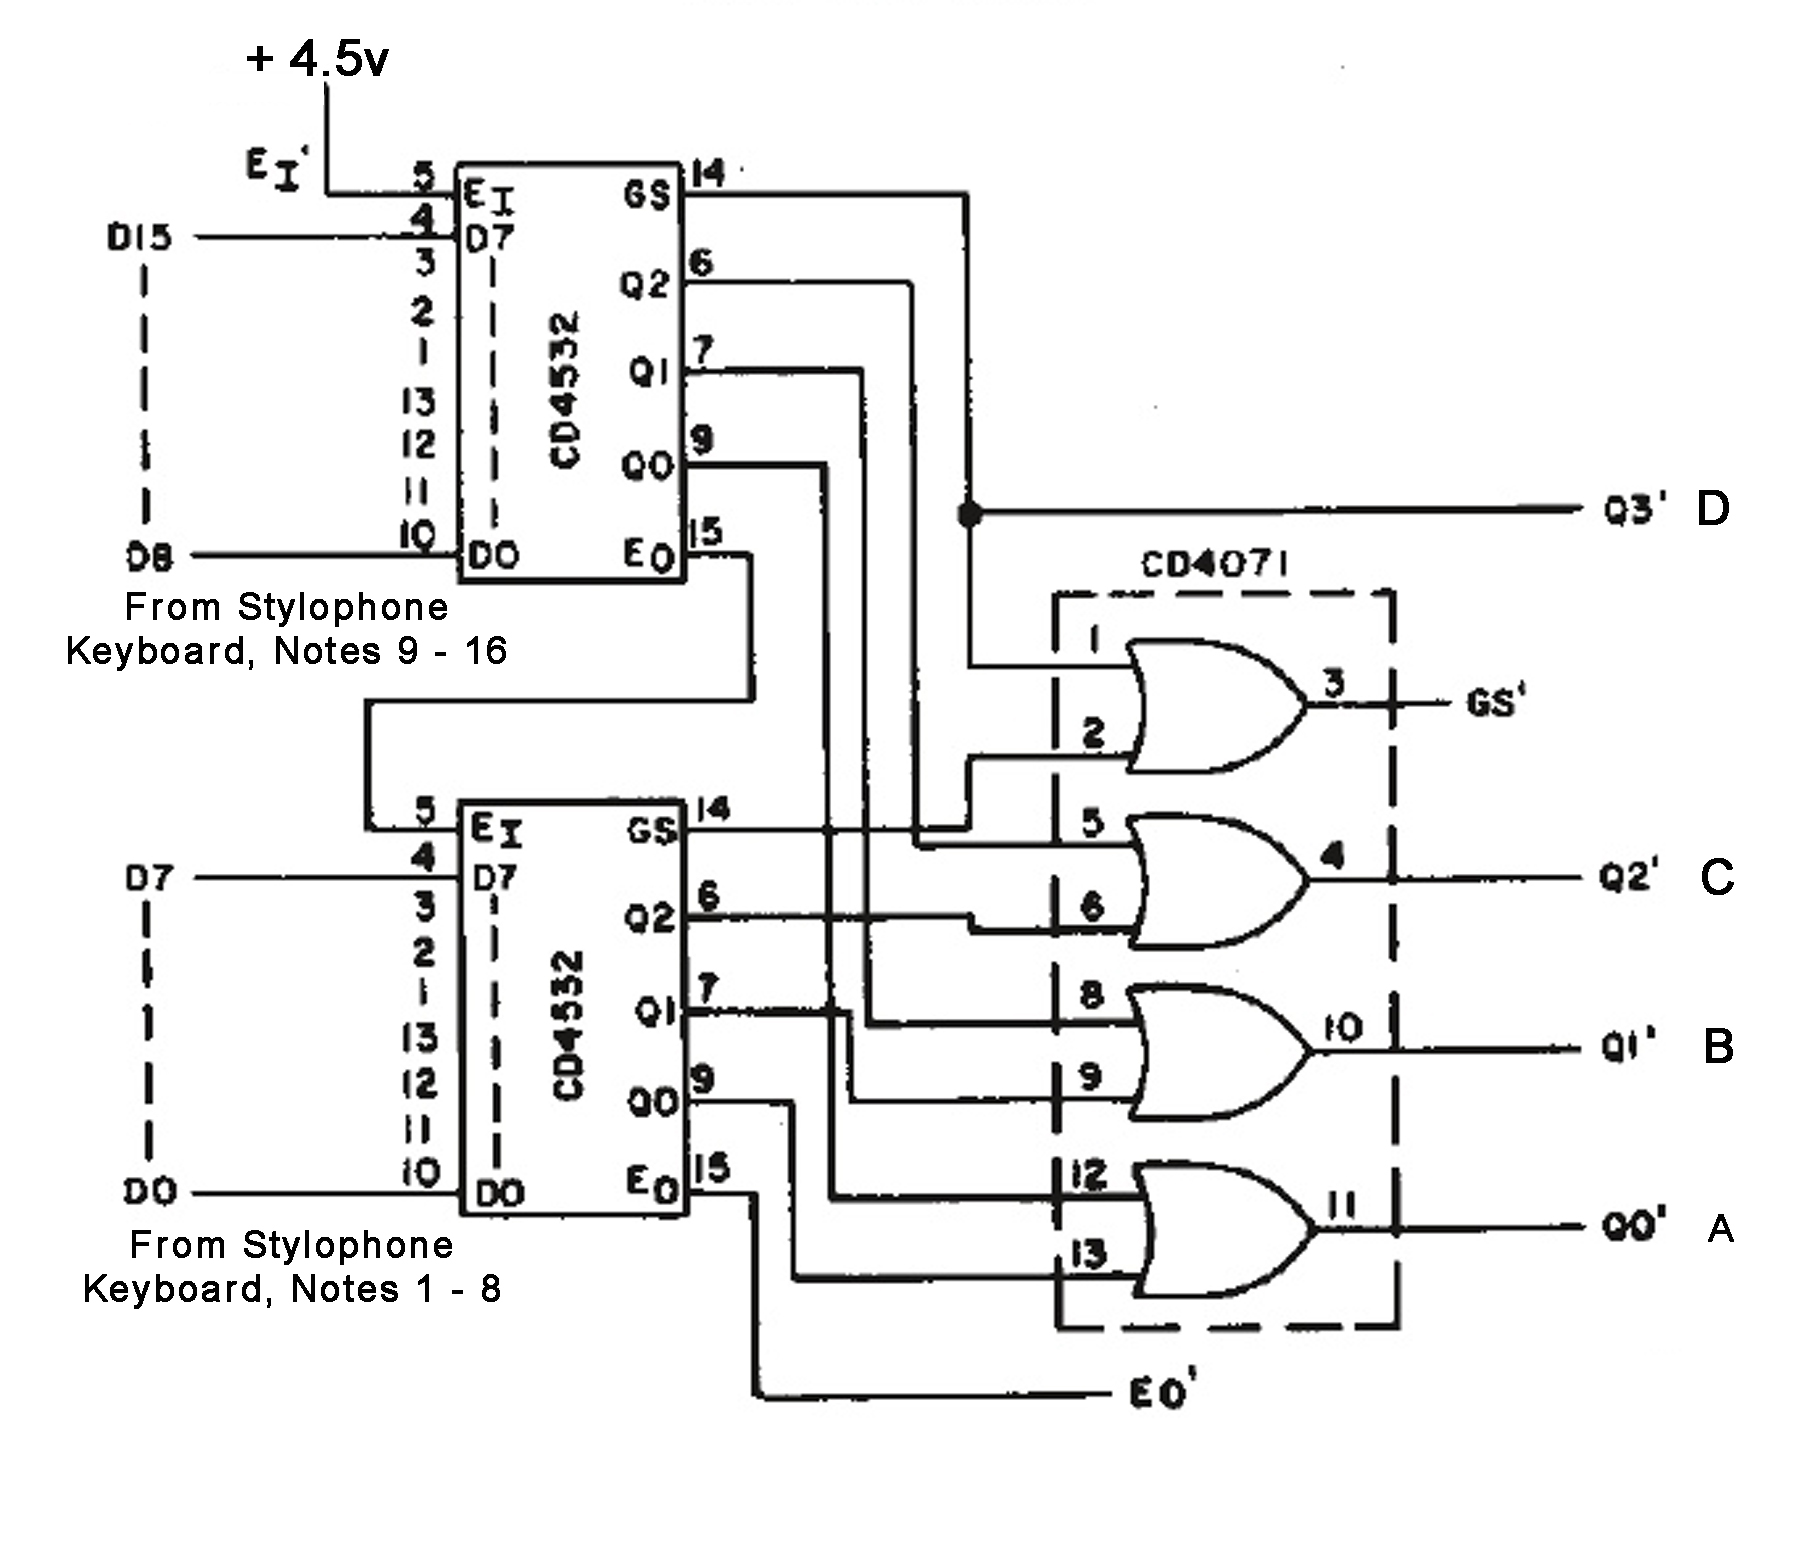 Logic Diagram For 8 To 3 Encoder